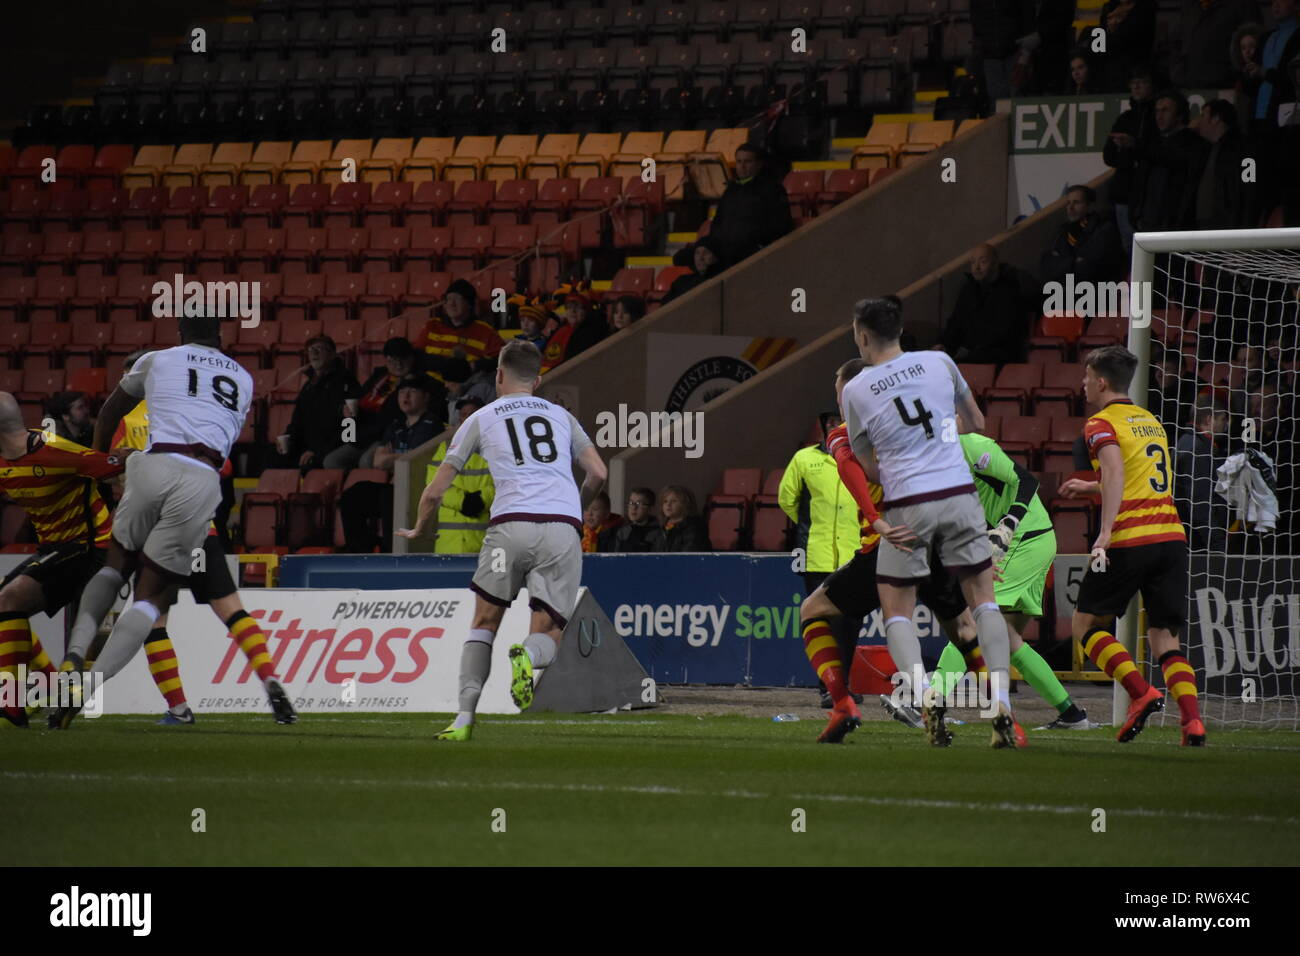 firhill, marhill, Glasgow, Scotland 4th march 2019 Partick Thistle defend deep as corner is driven into the box Credit: Thomas Porter/Alamy News - Stock Image